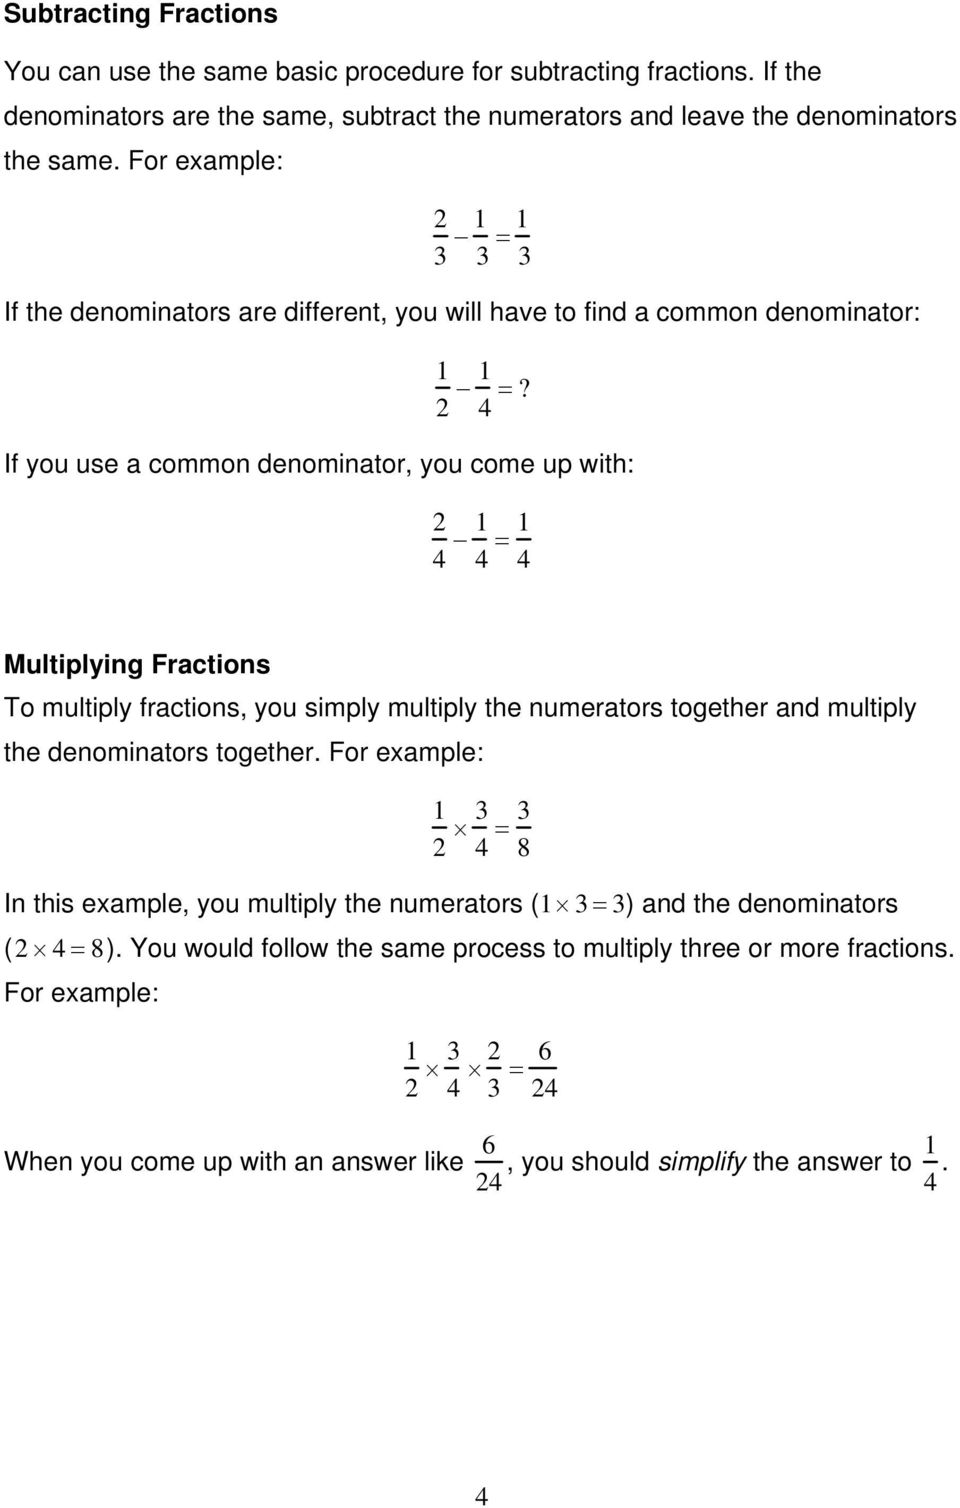 If you use a common denominator, you come up with: 2 4 1 4 = 1 4 Multiplying Fractions To multiply fractions, you simply multiply the numerators together and multiply the denominators together.